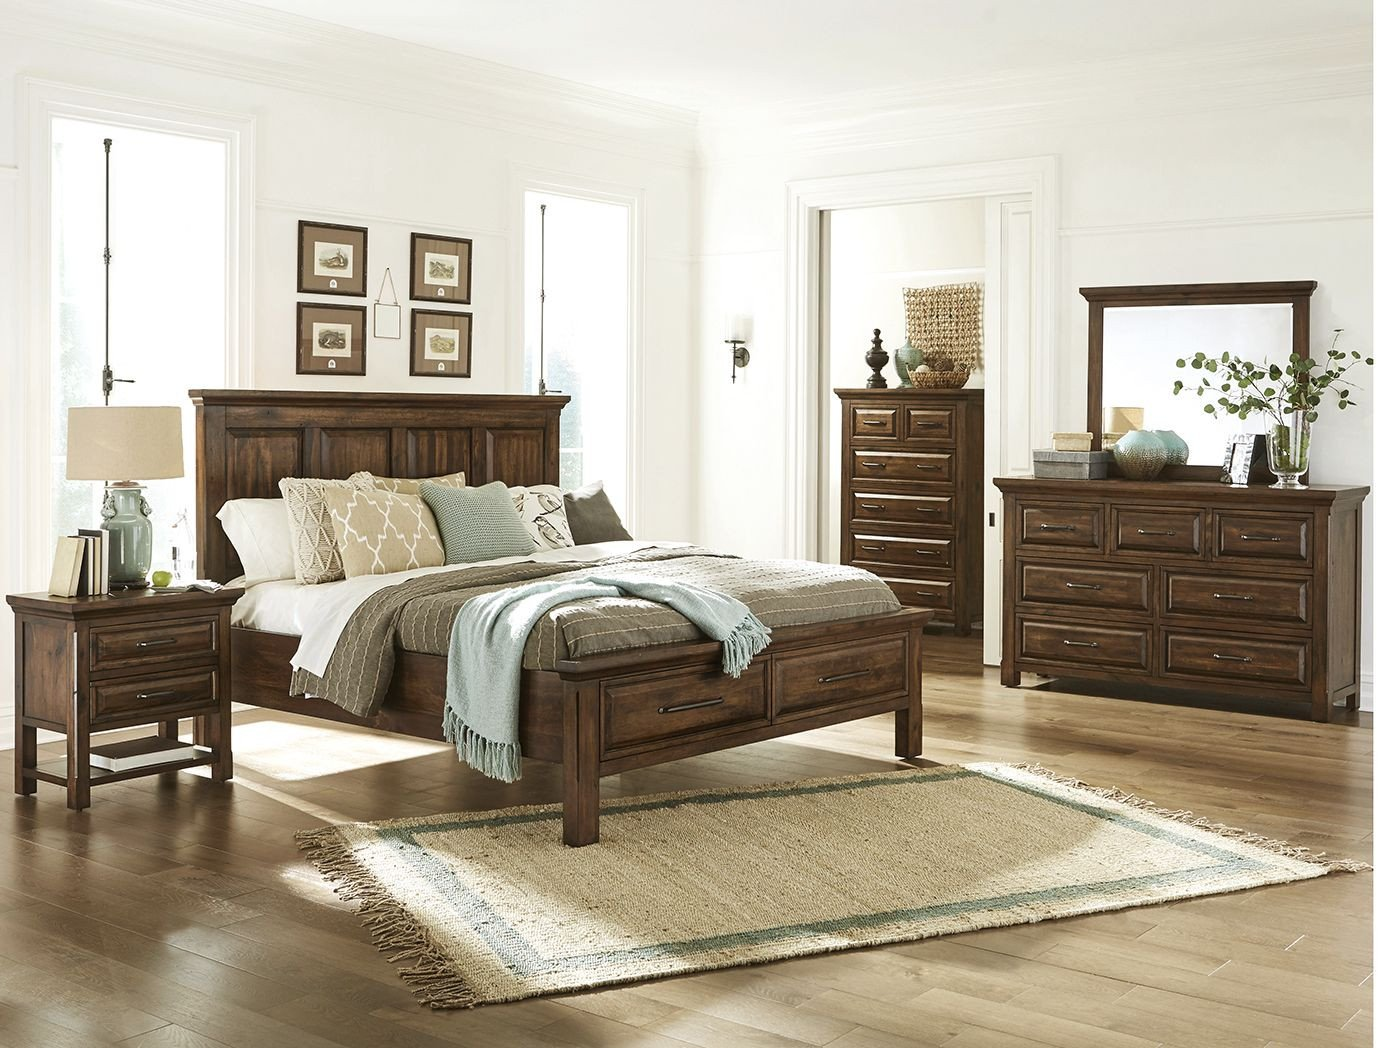 Cortina Sleigh Bedroom Set Lovely Hillcrest King Panel Storage Bed